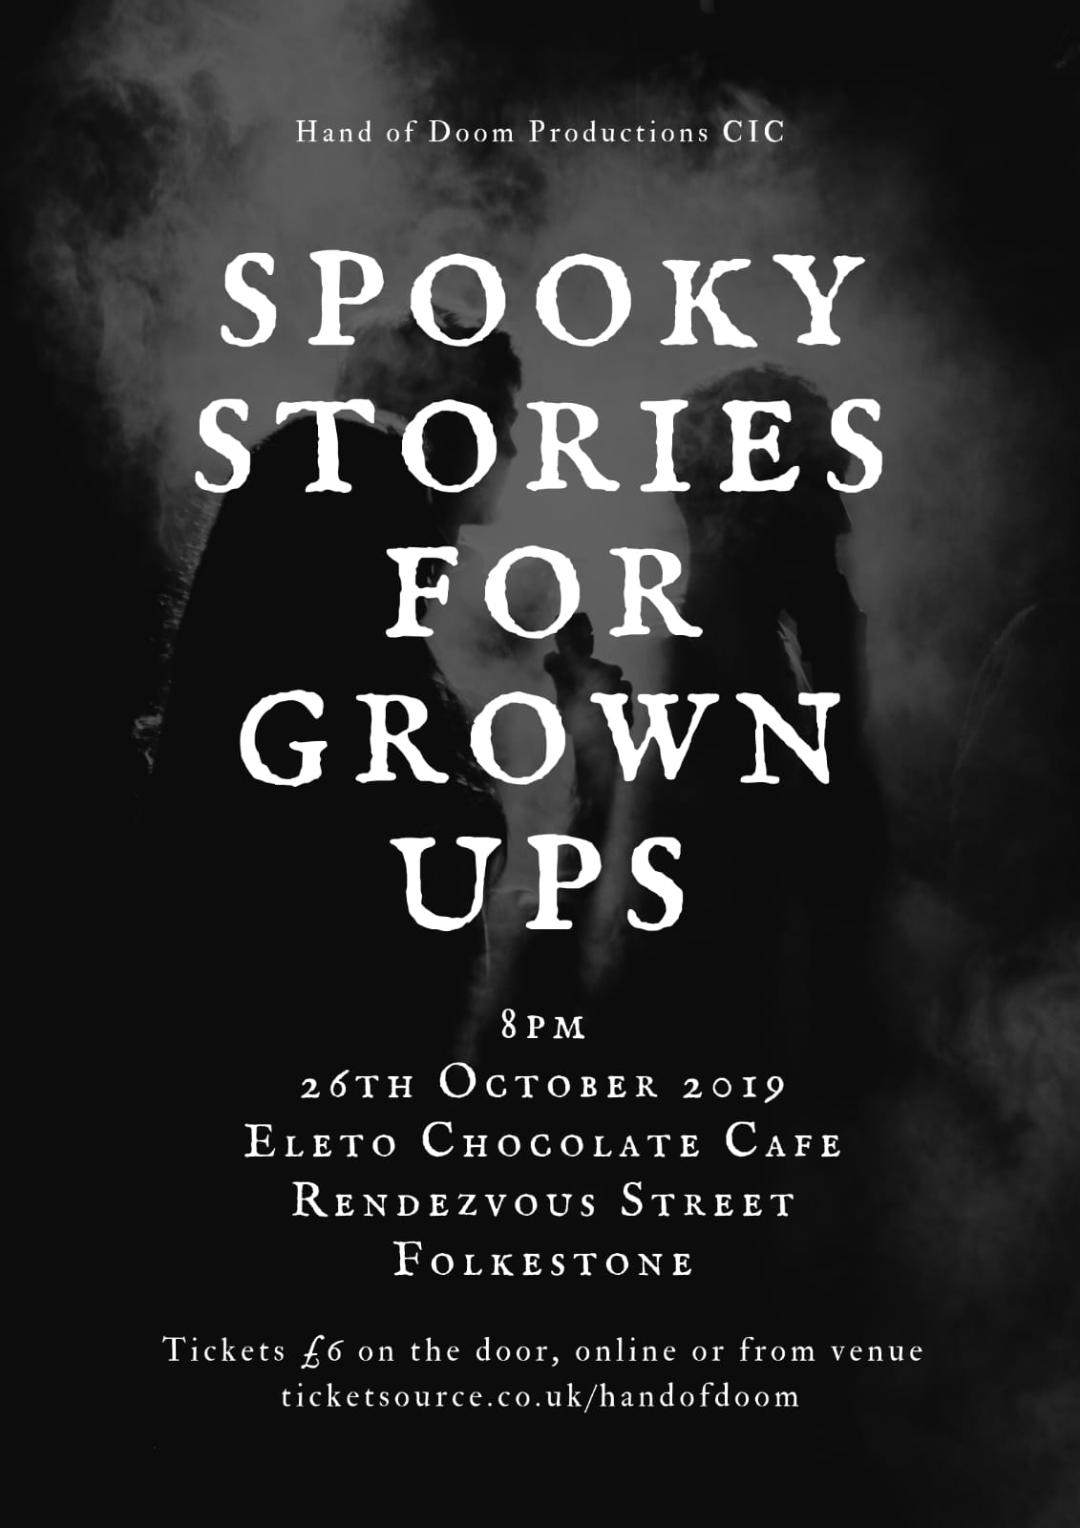 spooky stories 2019 jpeg